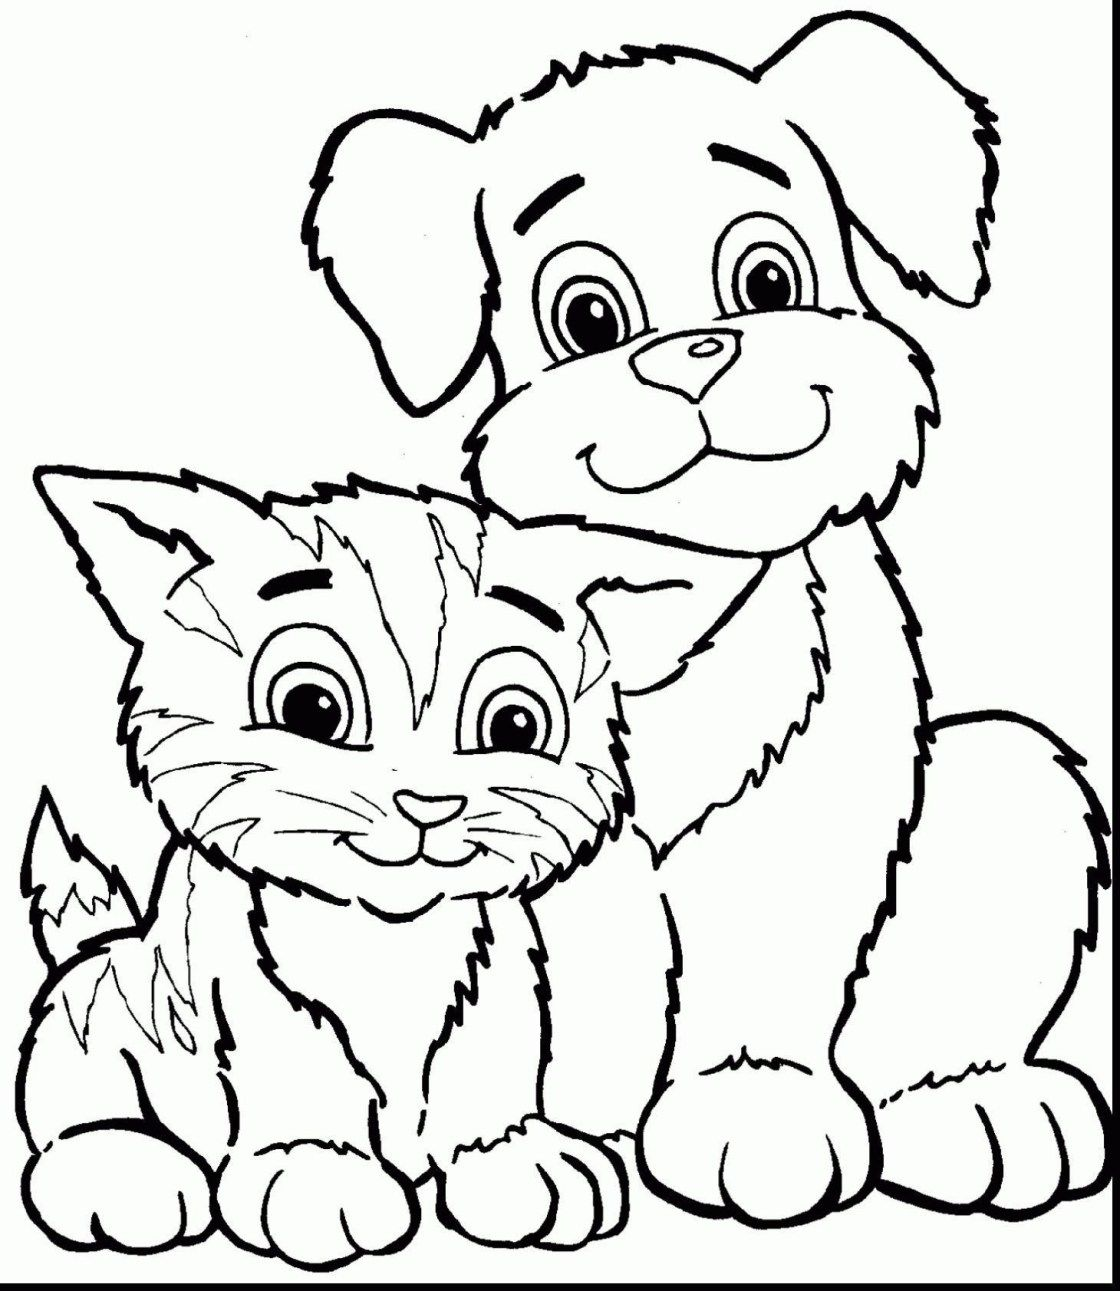 Coloring Pages Of Cats Highest Cat And Dog Coloring Pages Cats Dogs Page 13 Free Photosheep Entitlementtrap Com Dog Coloring Page Puppy Coloring Pages Cat Coloring Page